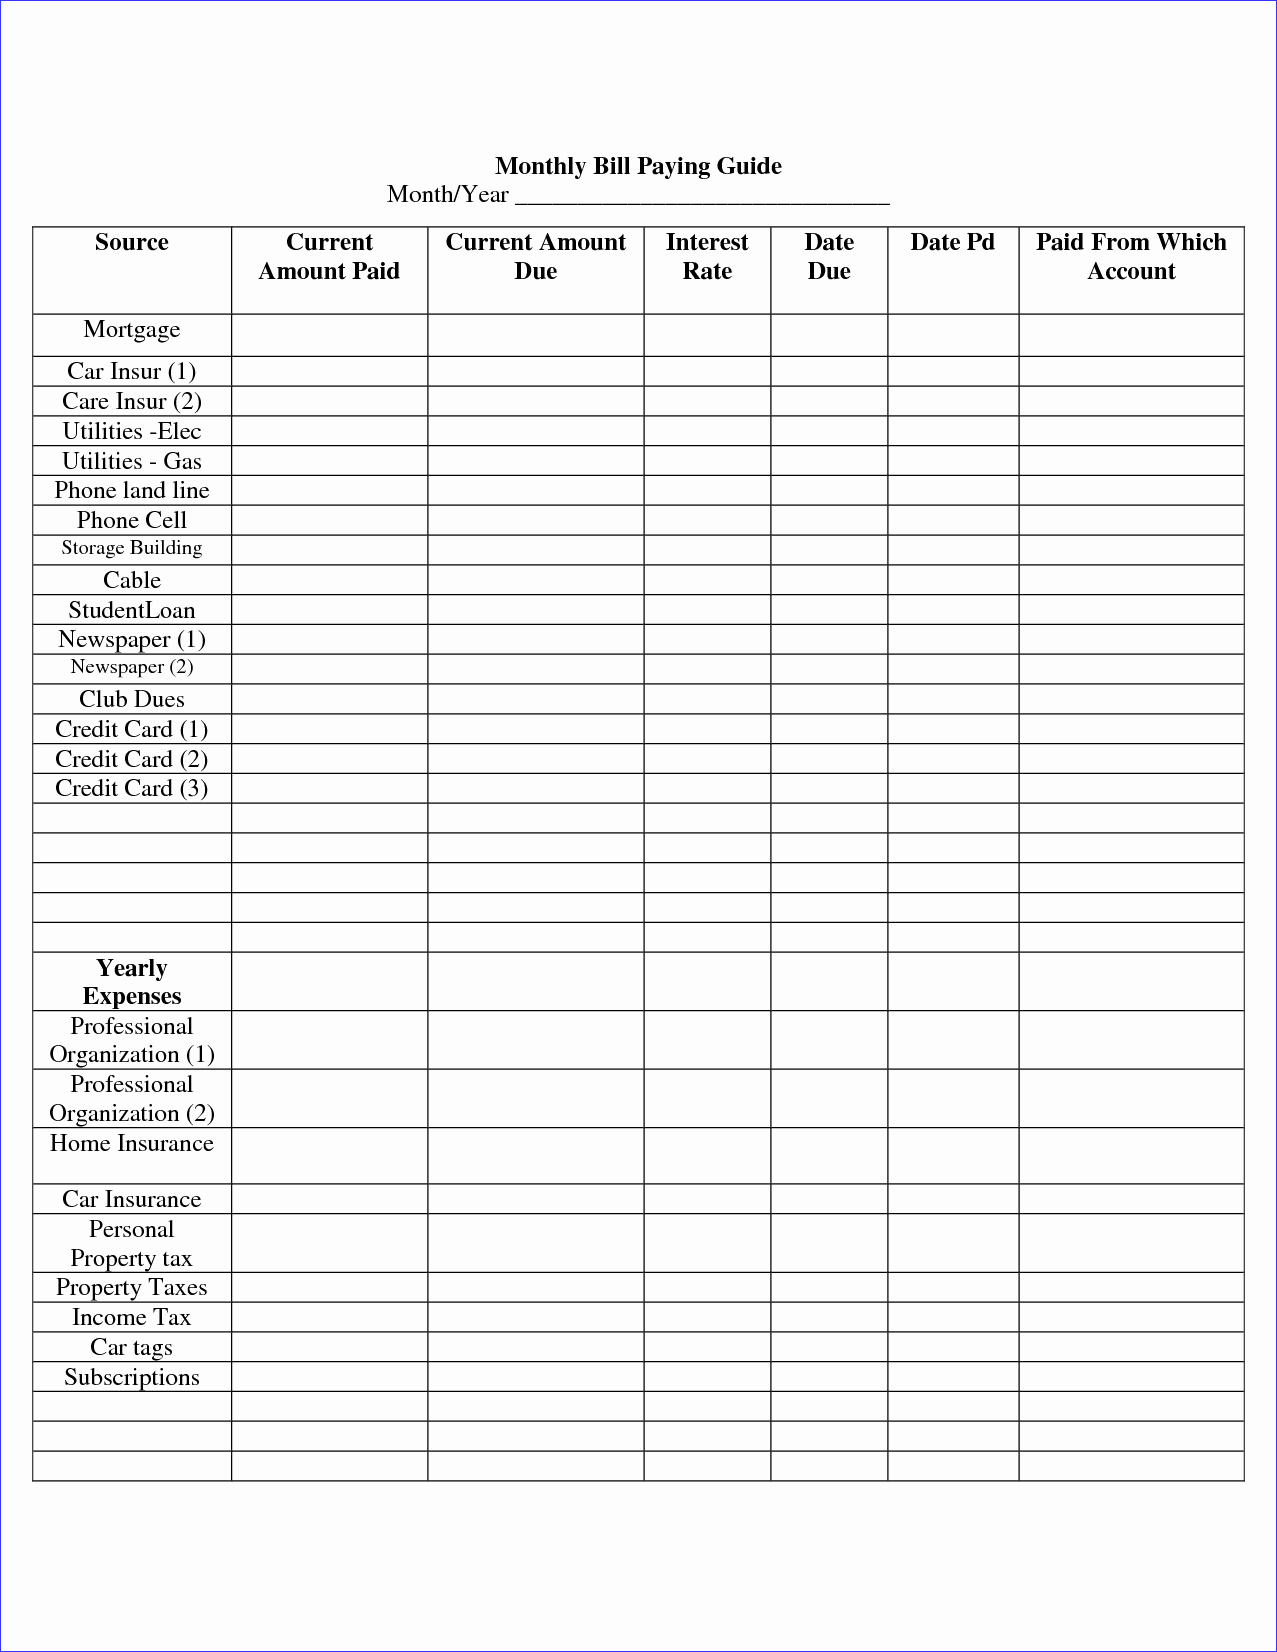 Bill organizer Template Excel Beautiful Simple Bill and Payment organizer Templates for Your